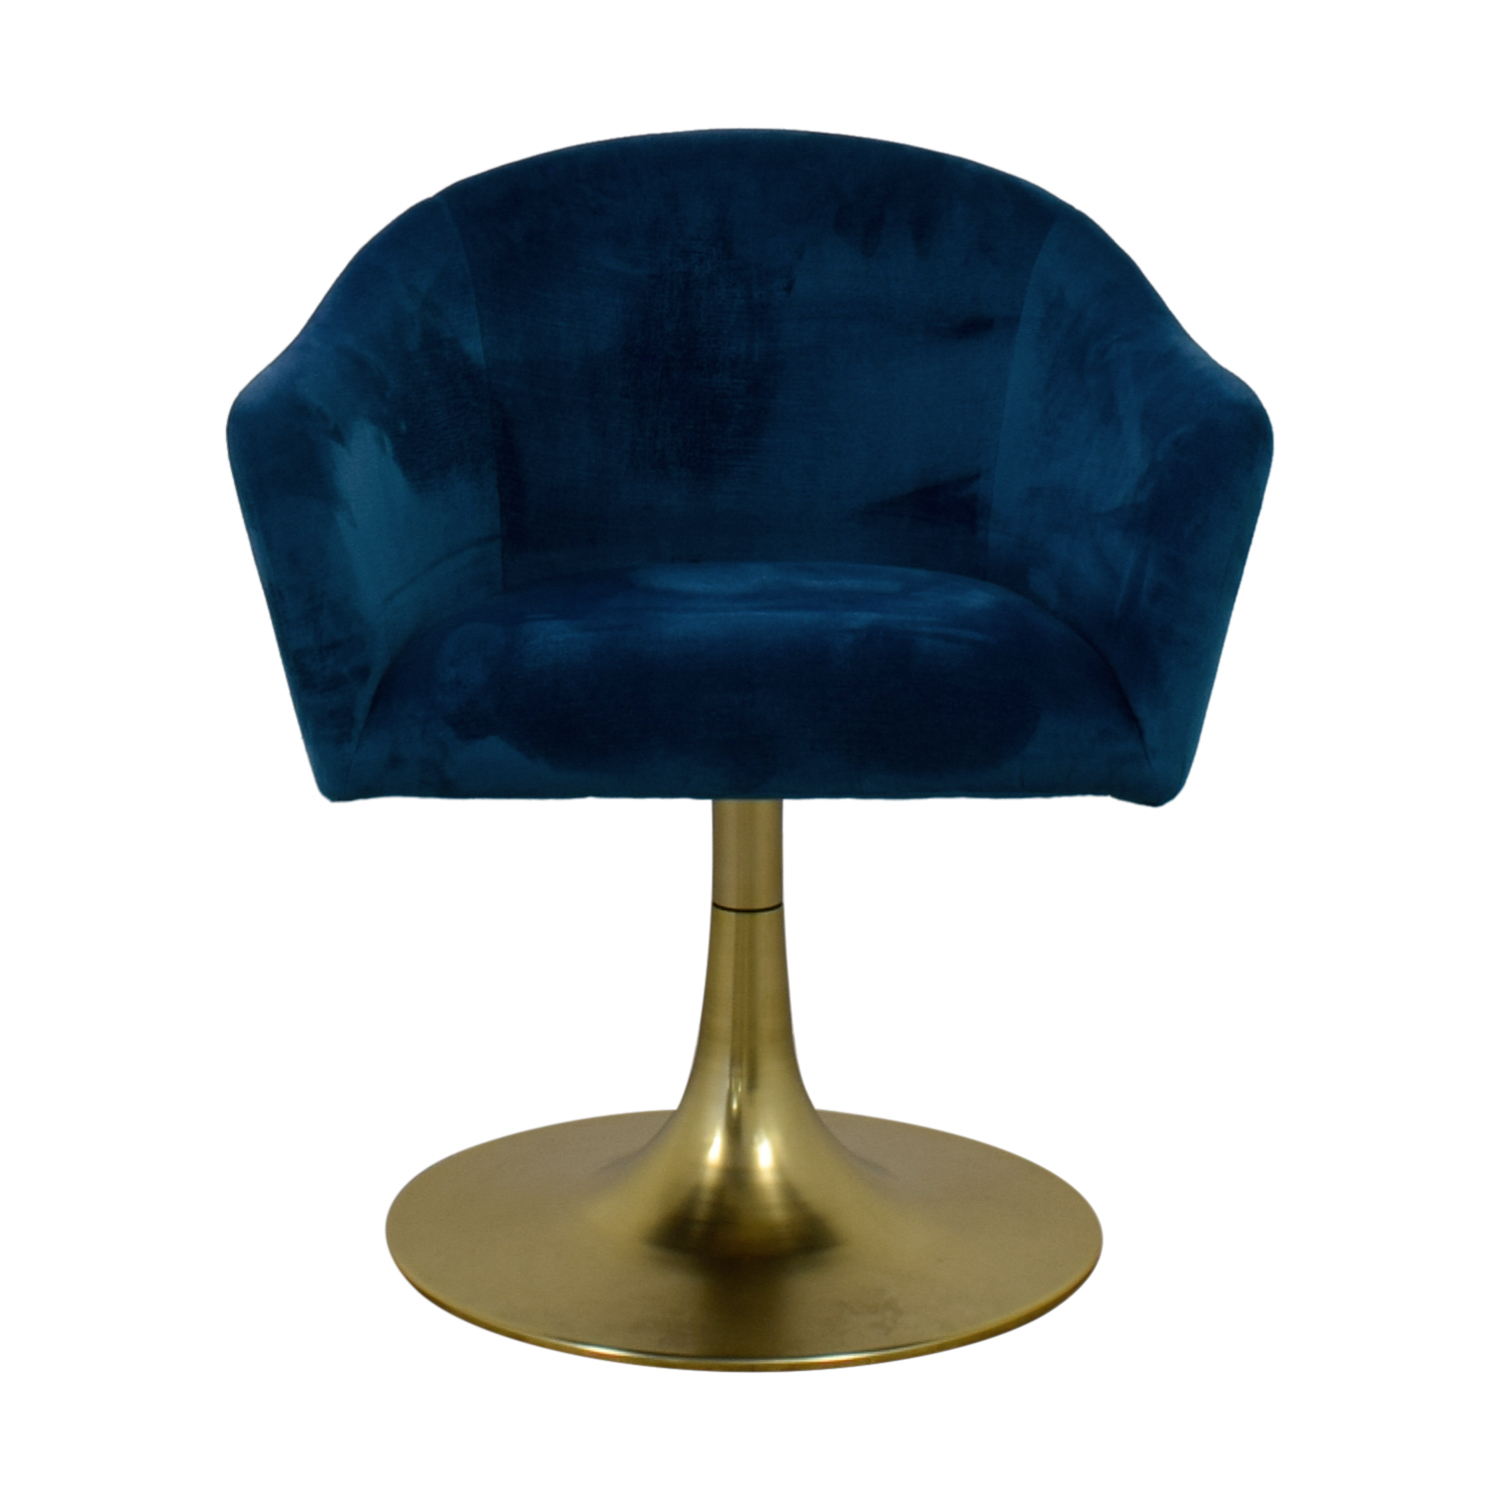 West Elm West Elm Bond Blue Velvet Swivel Chair for sale